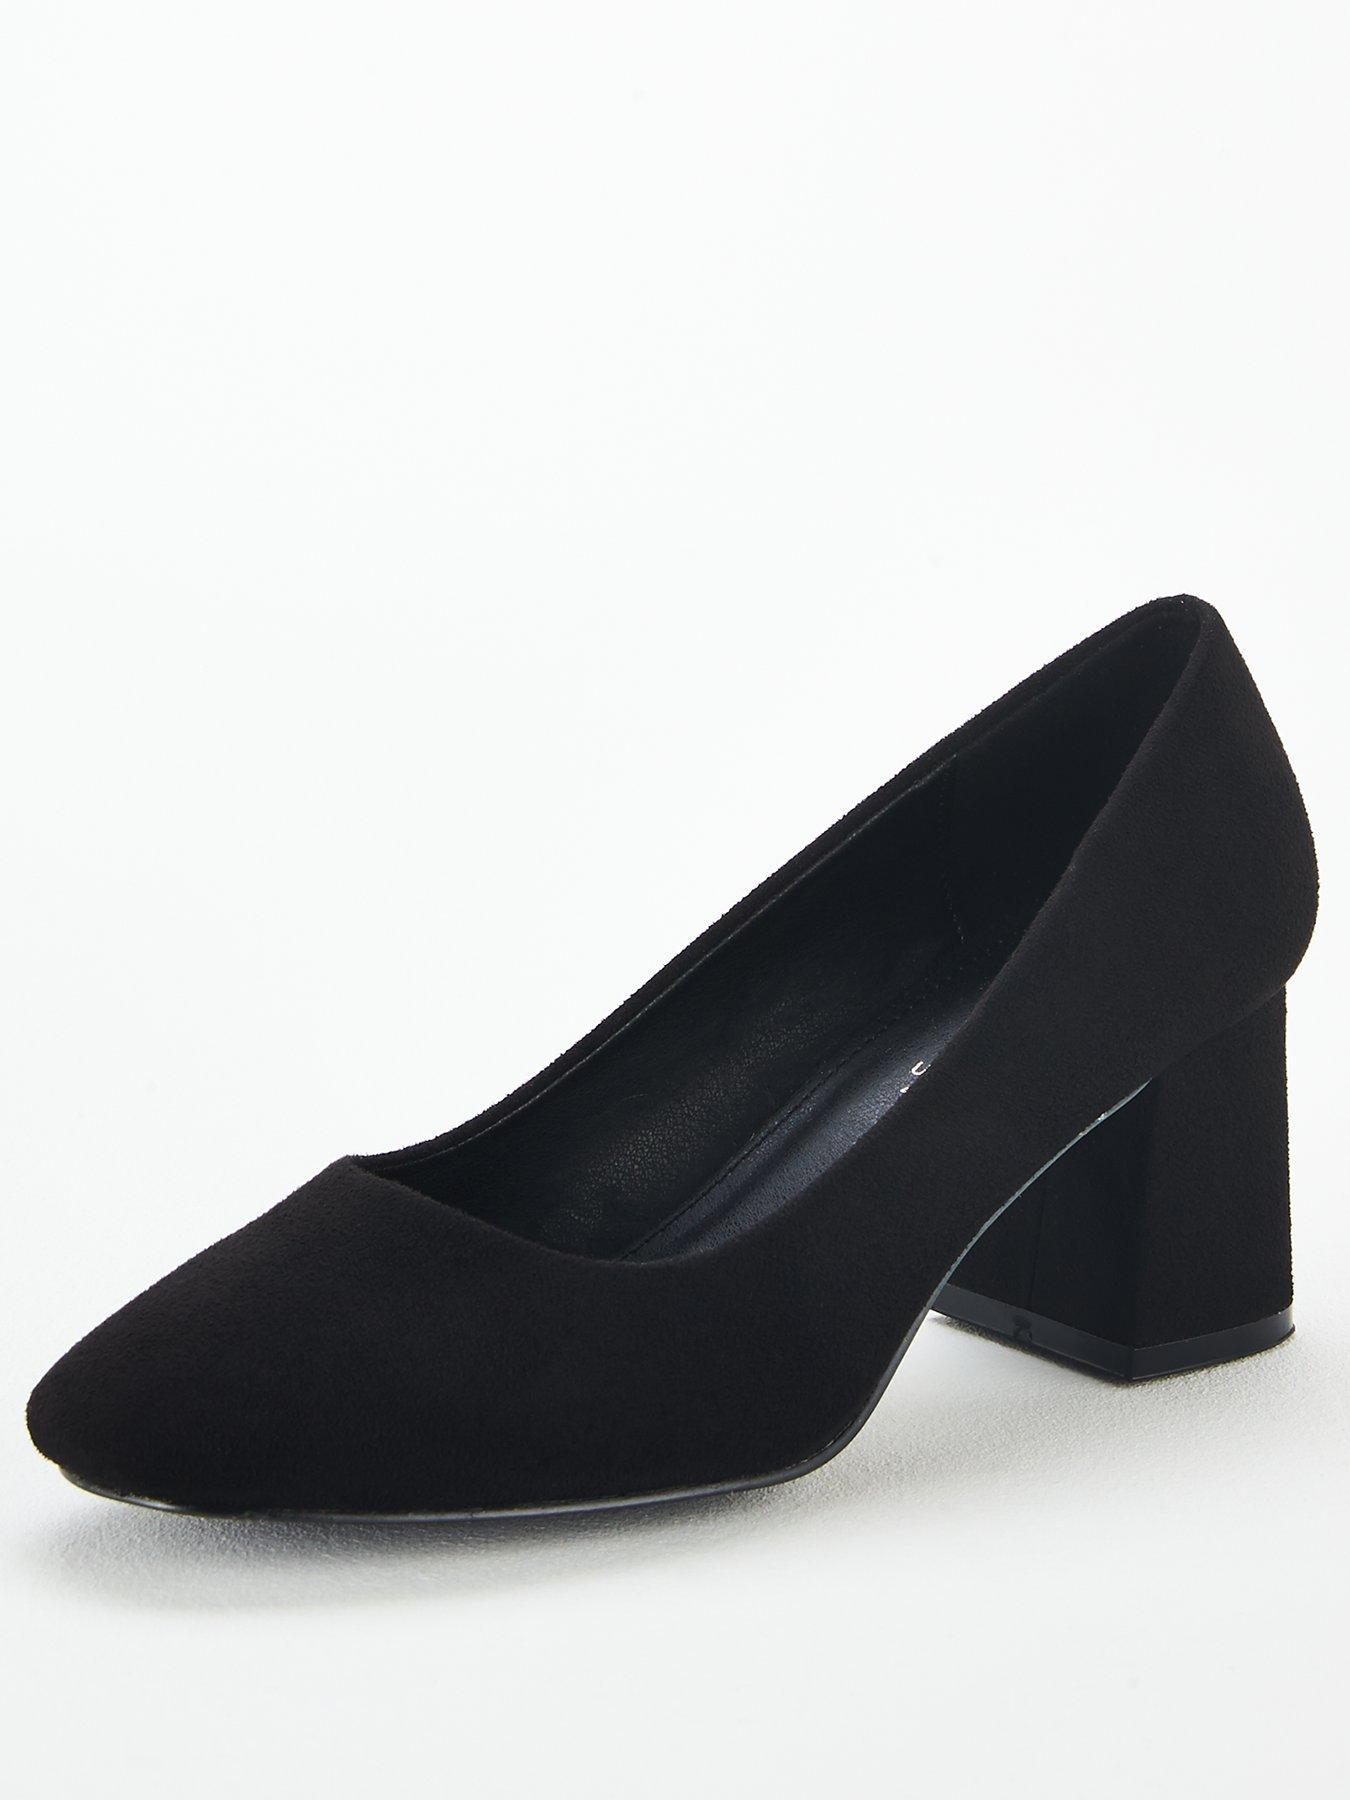 Wide Fitting Shoes \u0026 Boots | Shop